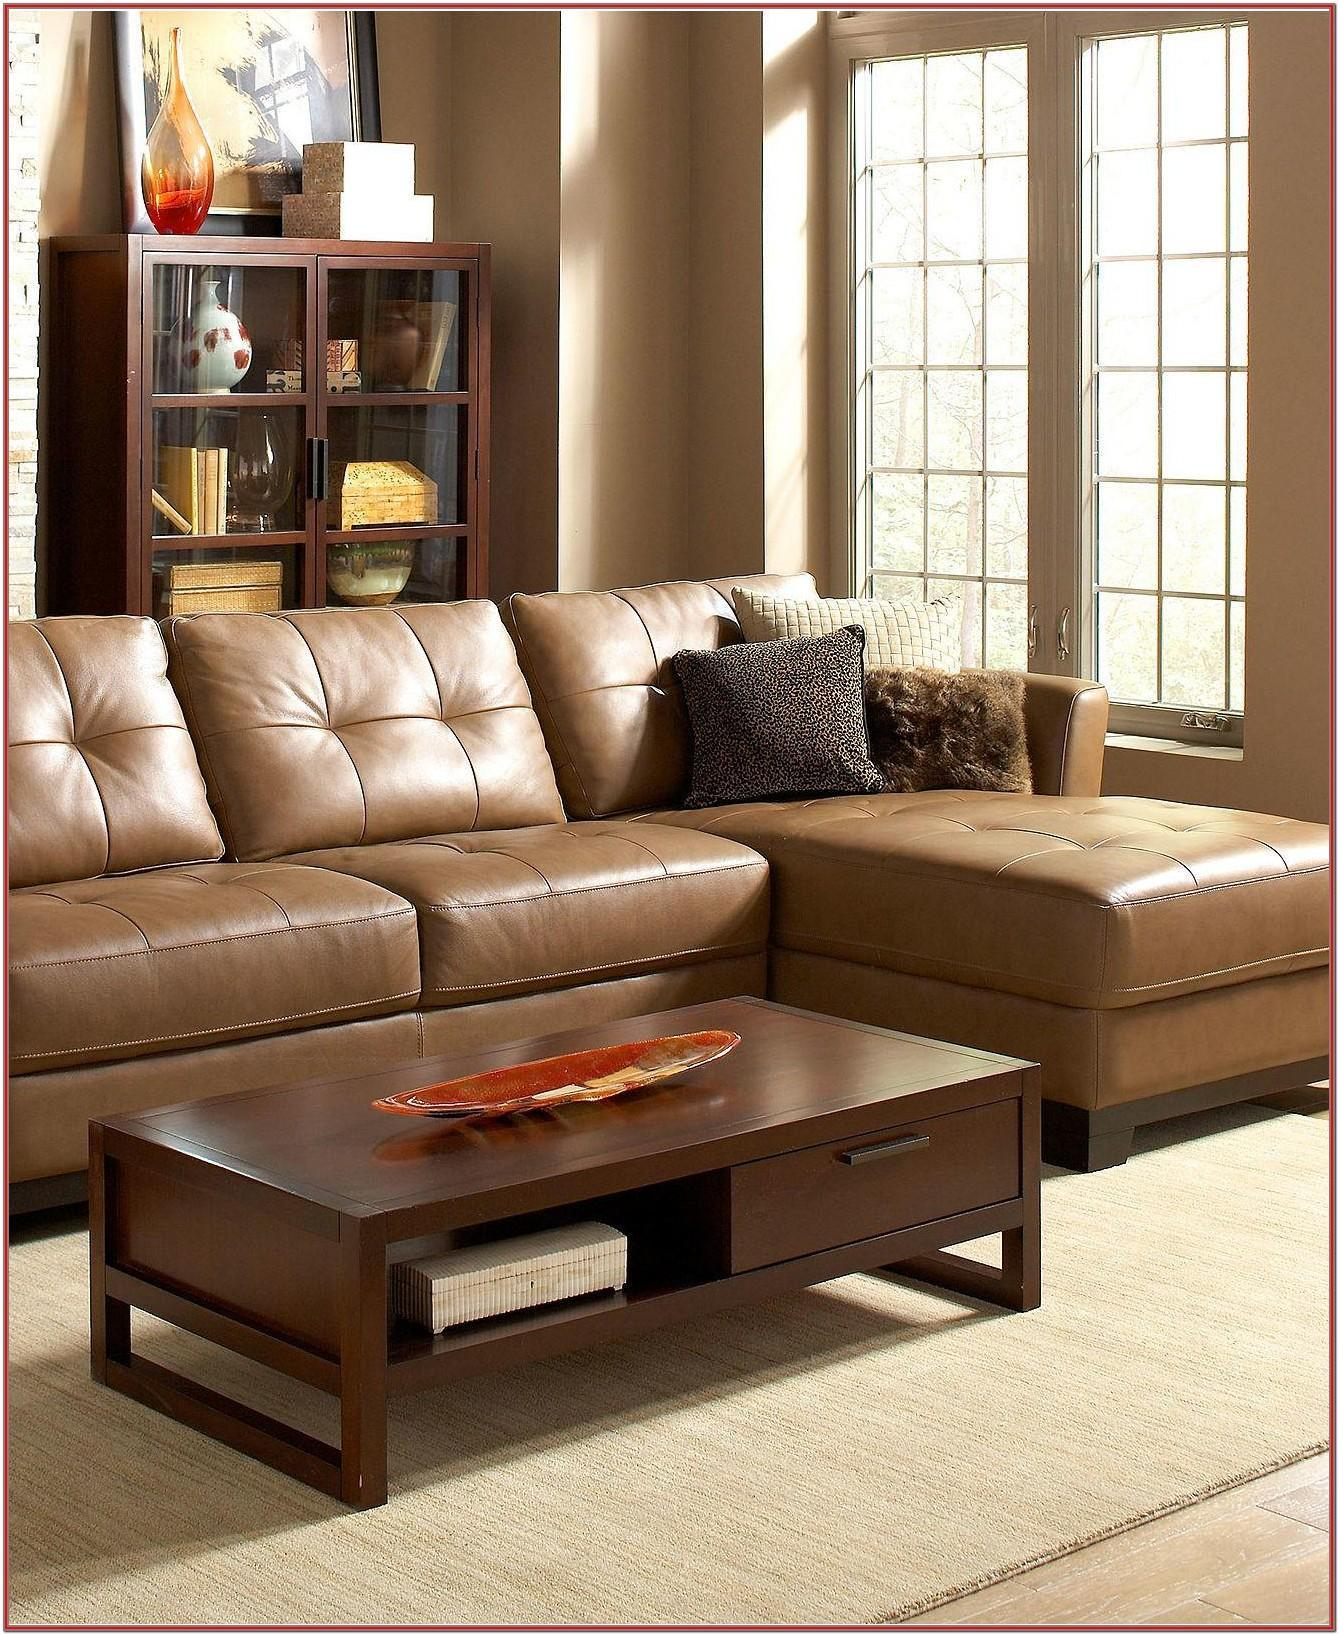 Macys Living Room Furniture Sets